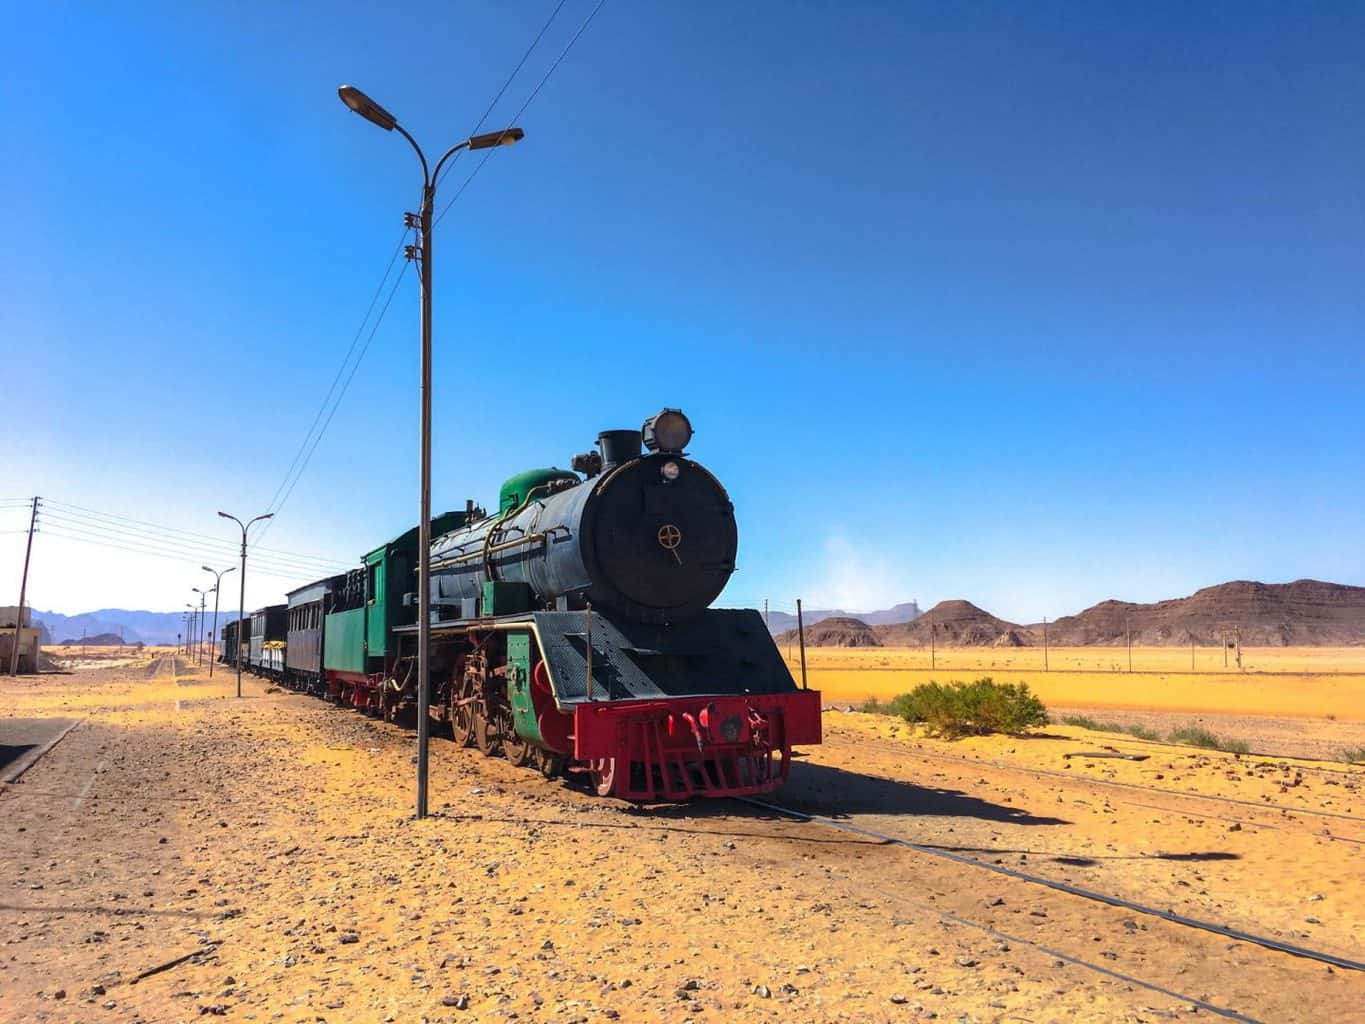 the train in Wadi Rum